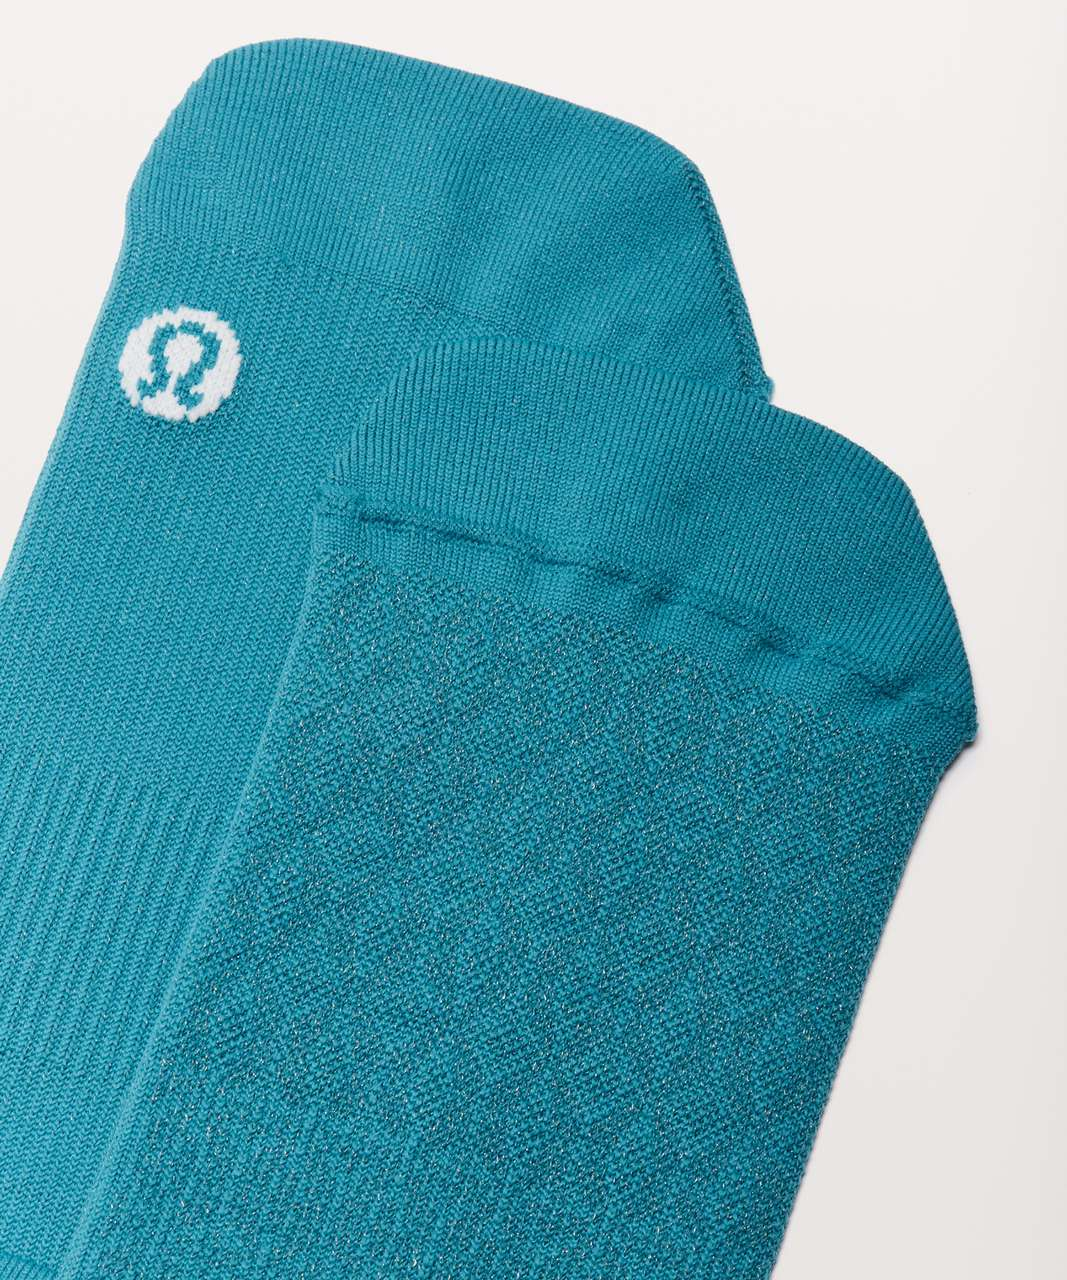 Lululemon Light Speed Sock *Silver - Teal Blue